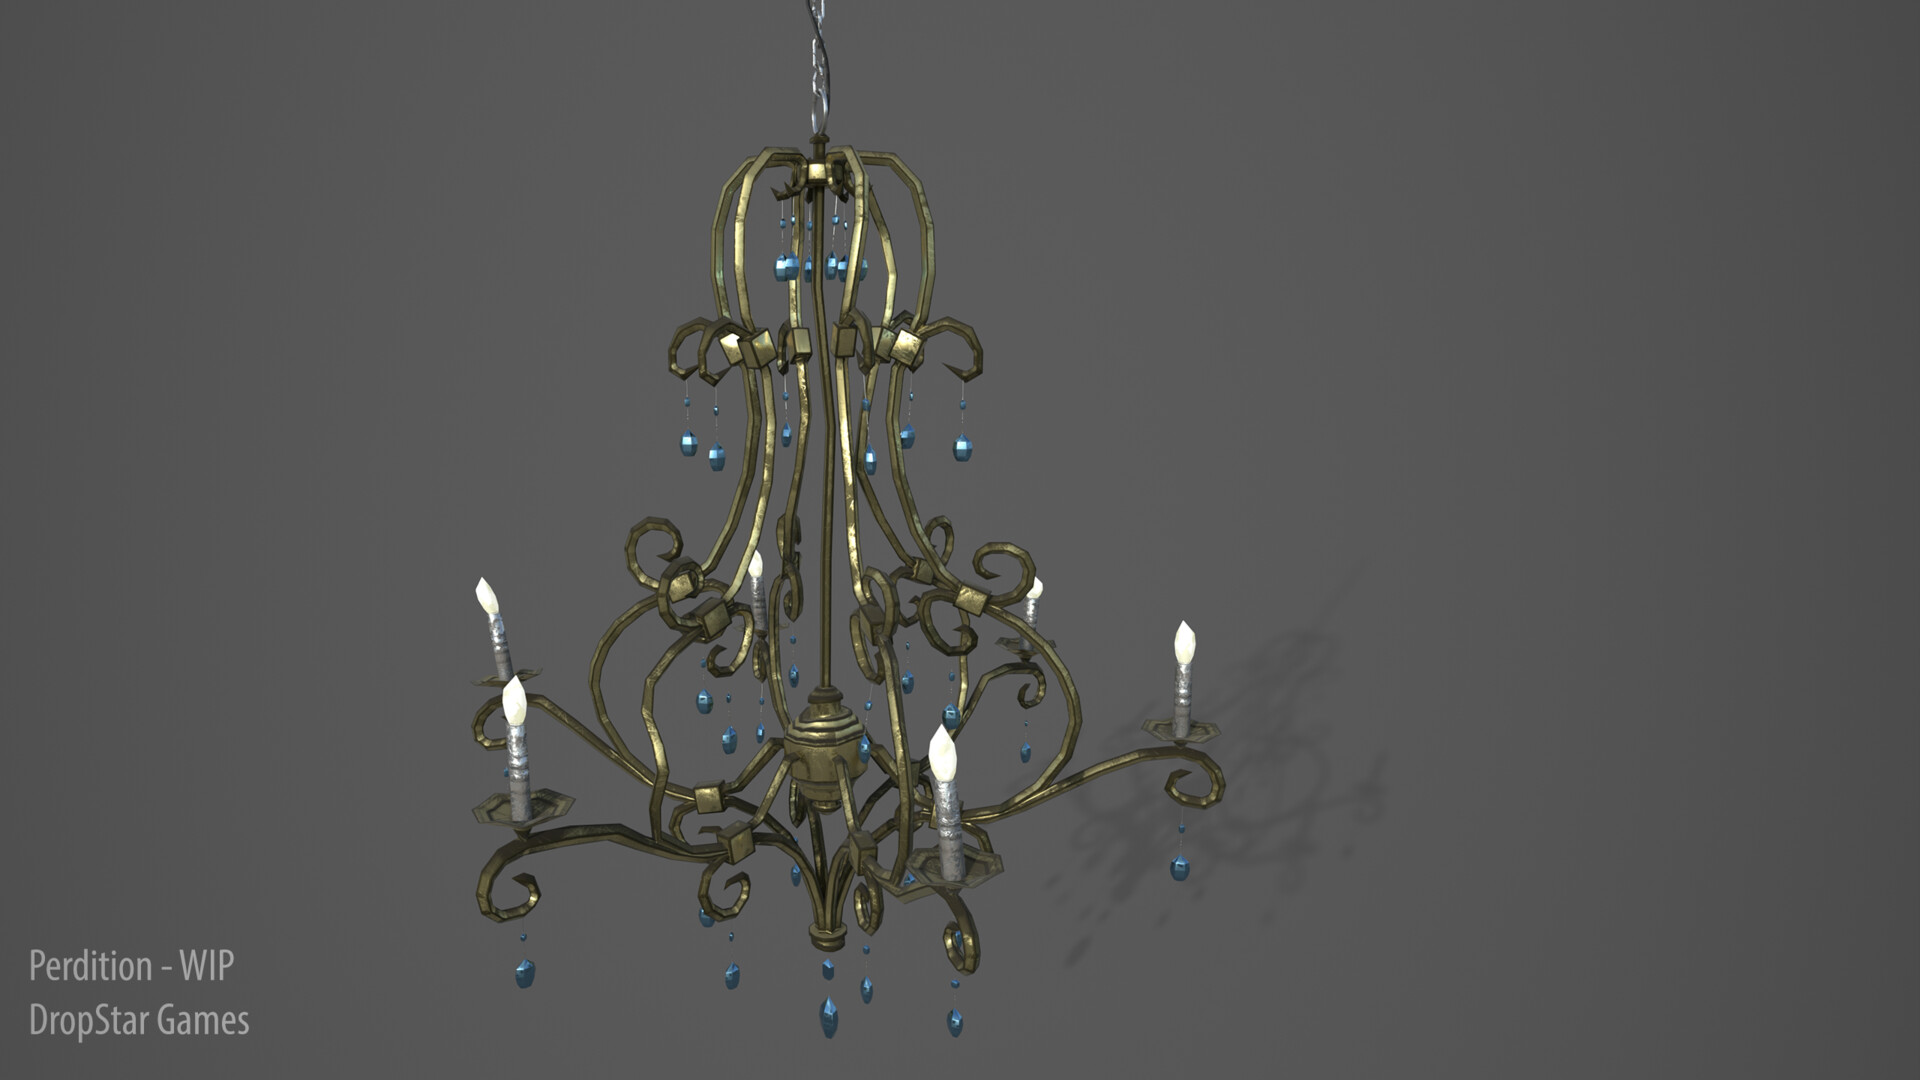 Chandelier - Rendered in Iray